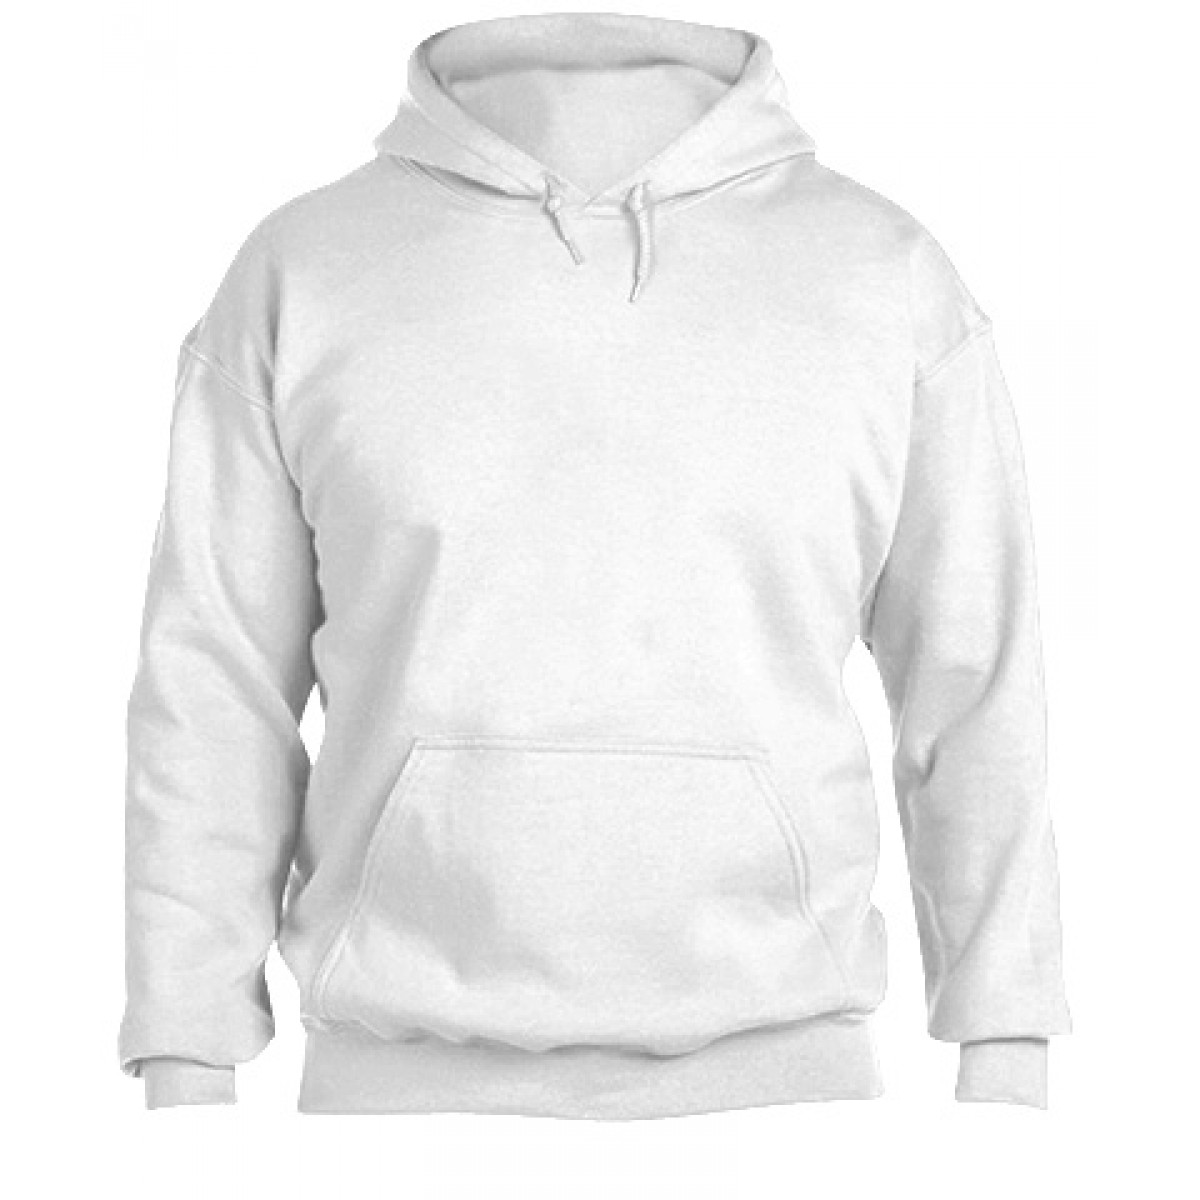 Hooded Sweatshirt 50/50 Heavy Blend -White-2XL